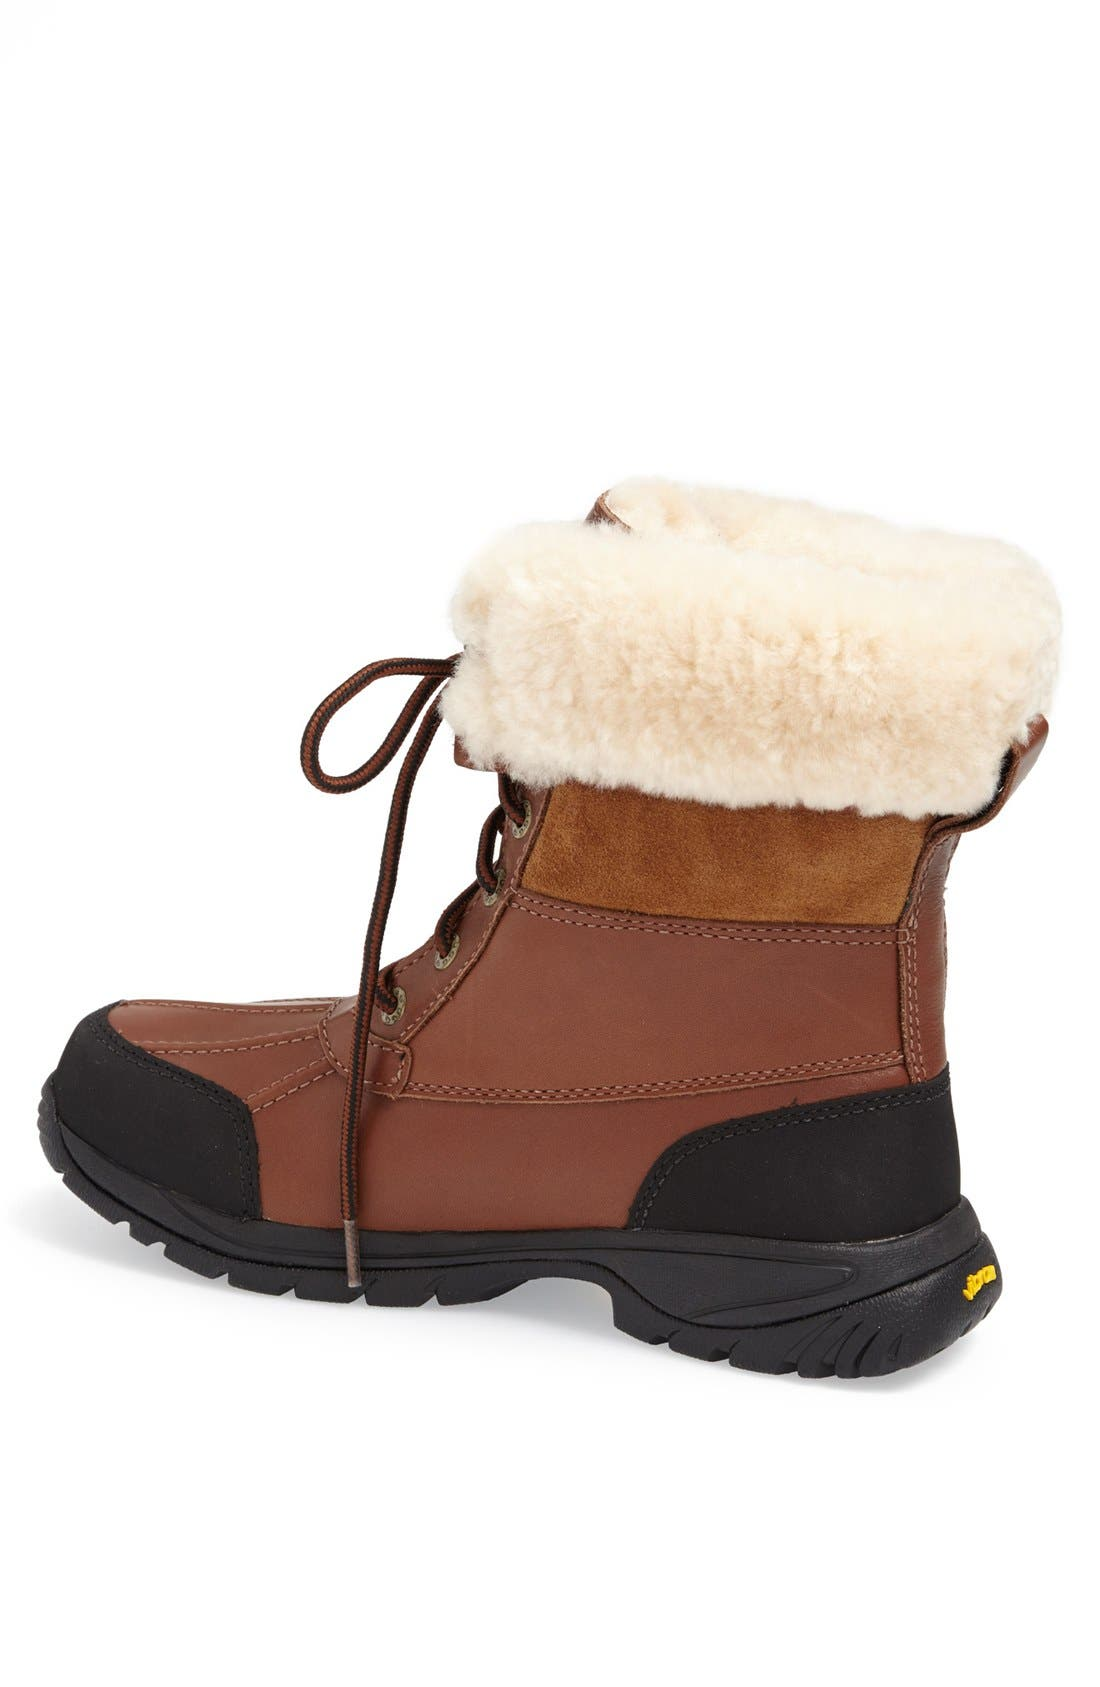 Butte Waterproof Boot,                             Alternate thumbnail 2, color,                             WORCHESTER